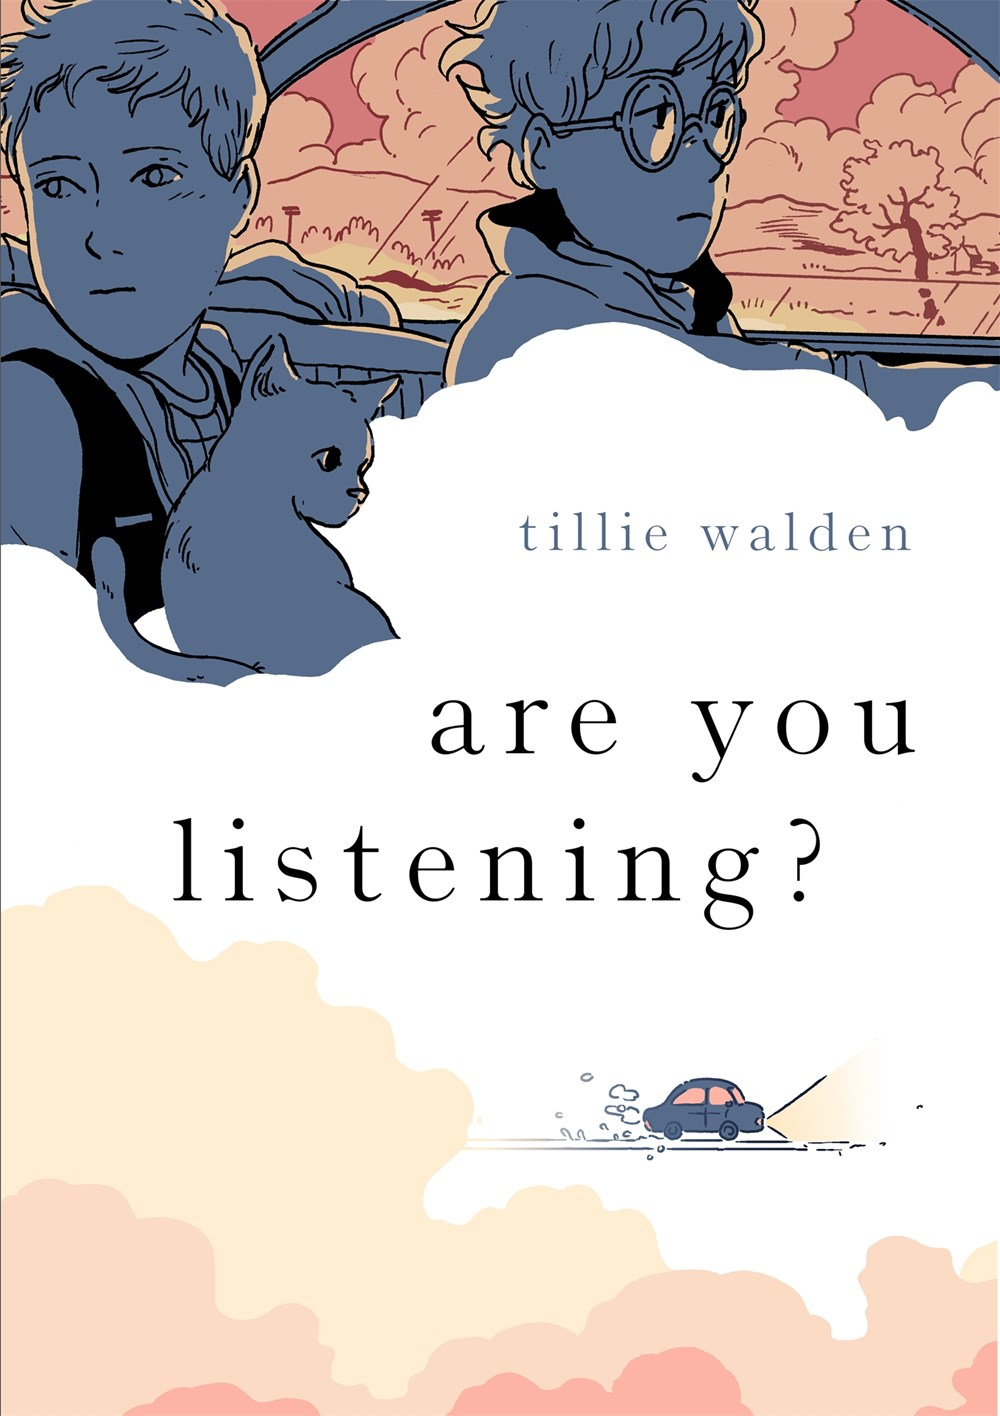 'Are You Listening?' by Tillie Walden Wins Eisner Award | Book Pulse